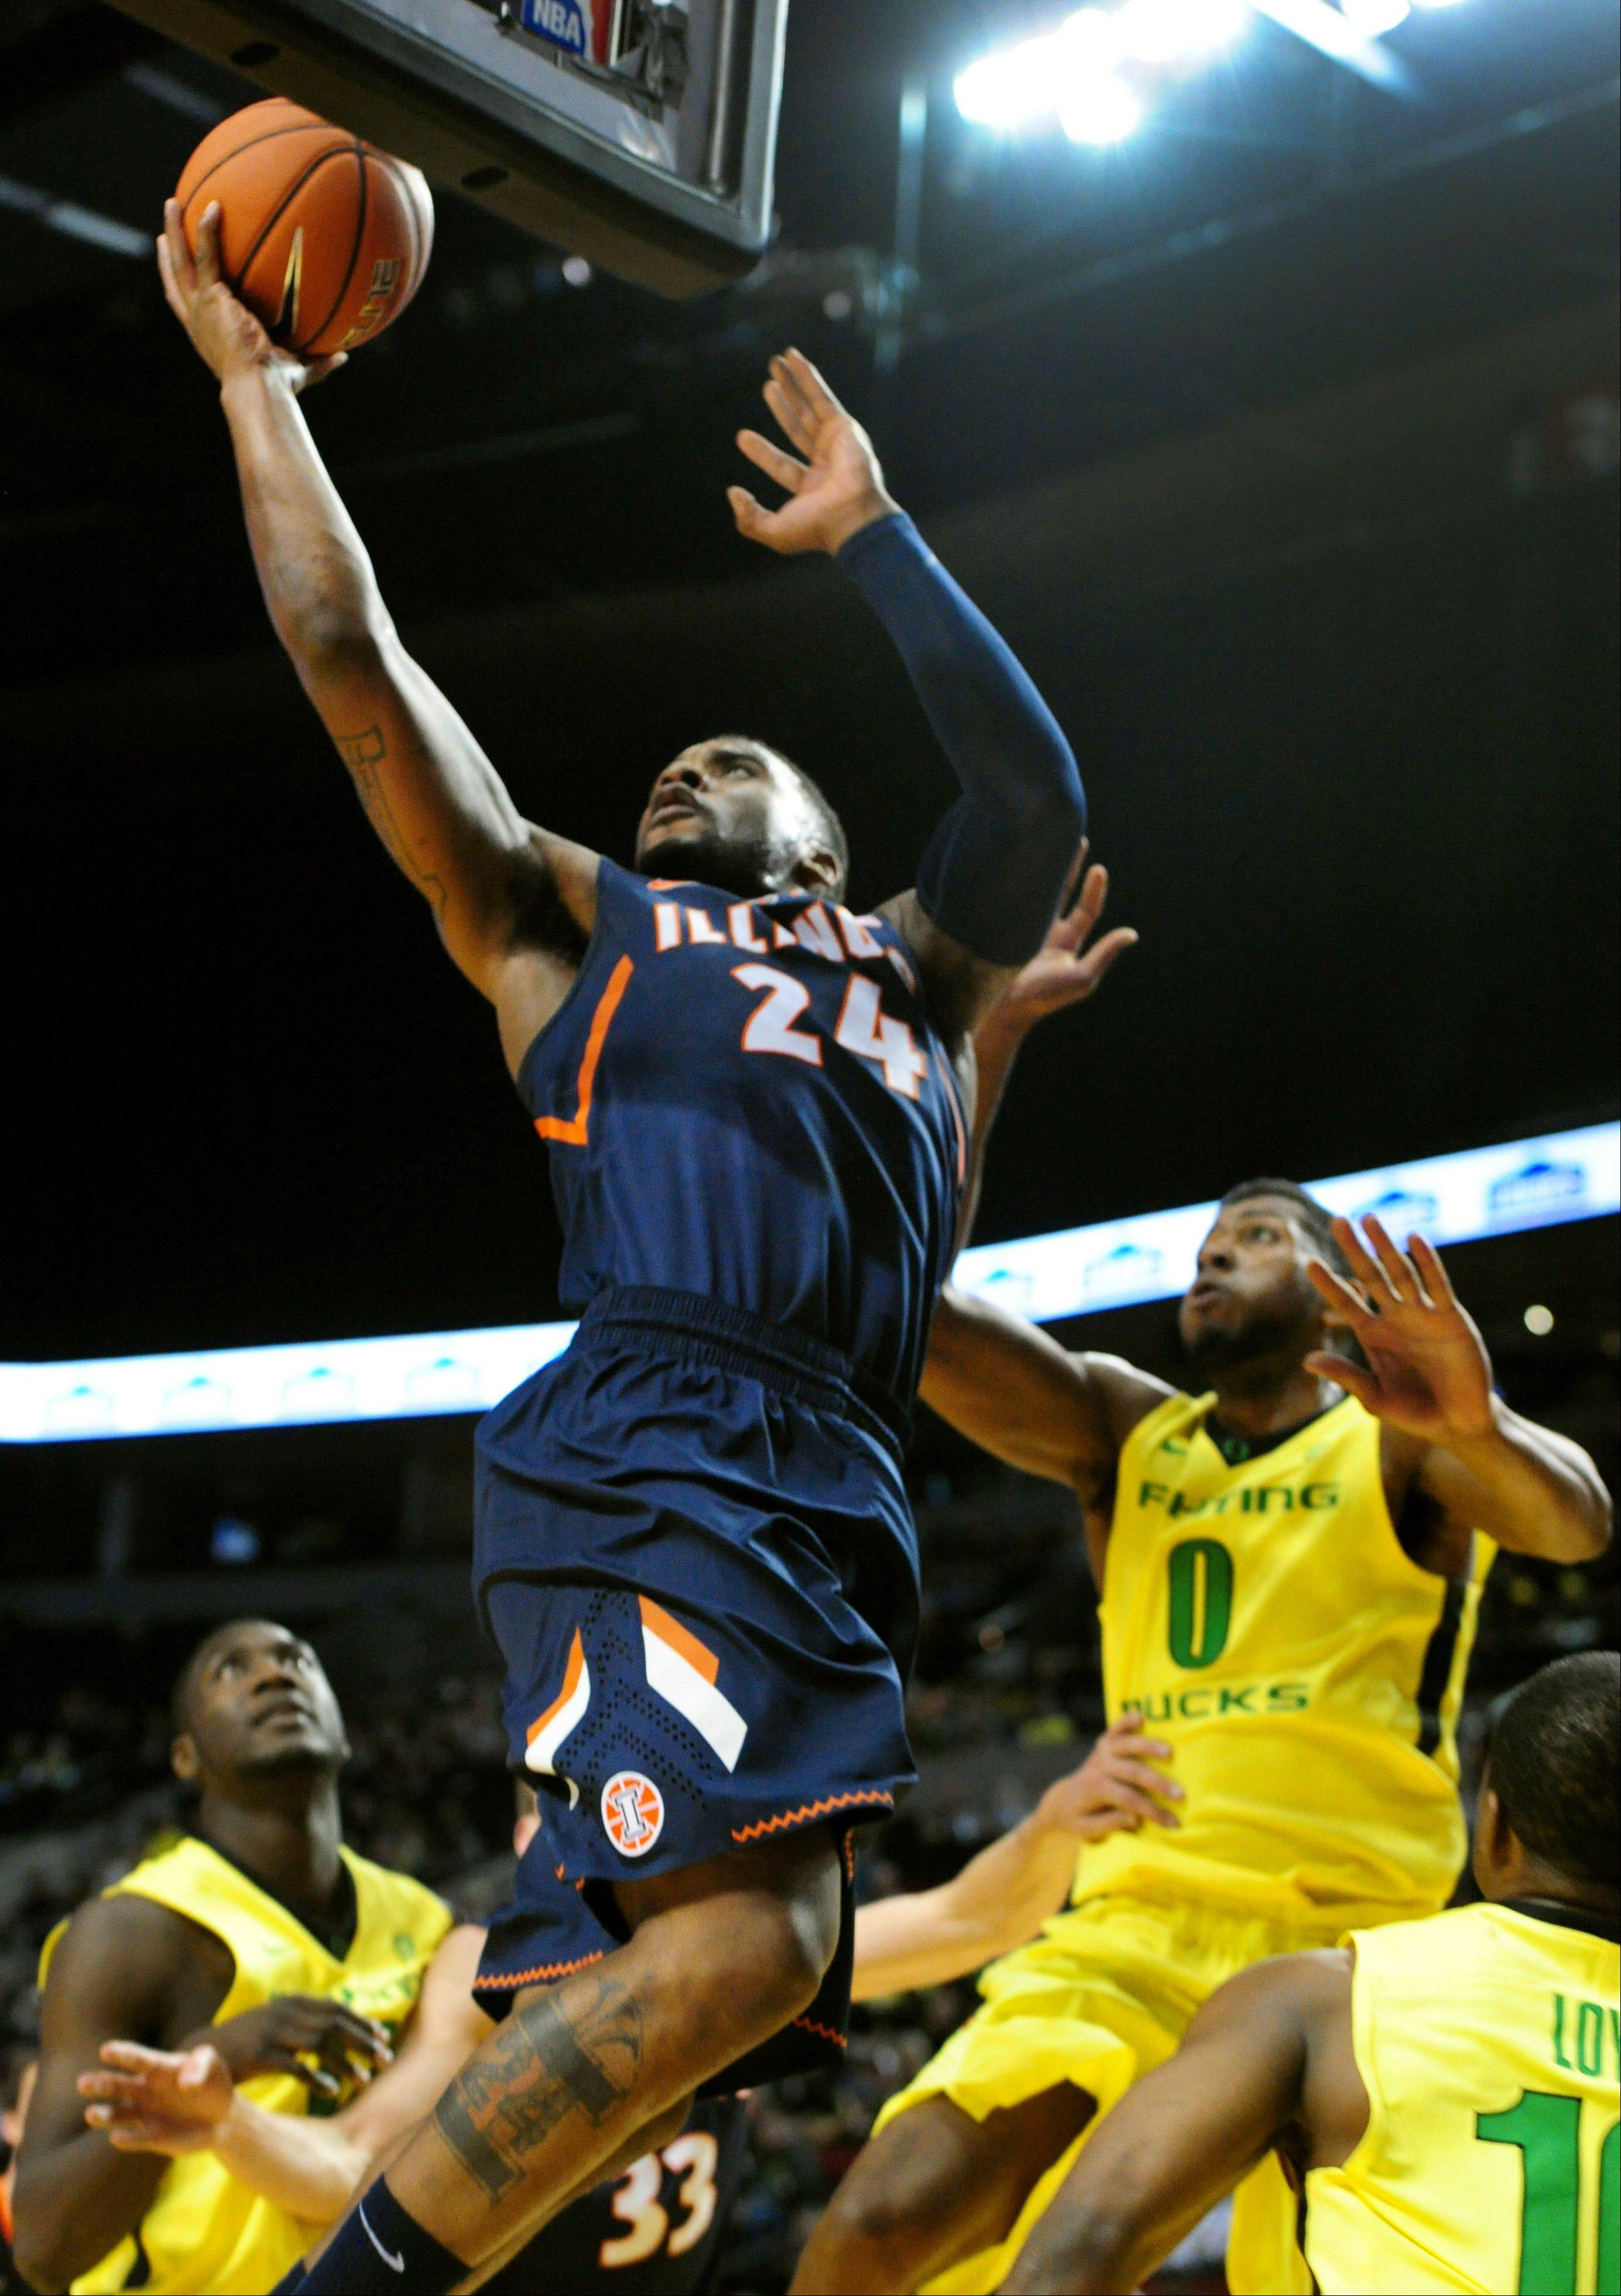 Illinois guard Rayvonte Rice (24) drives to the basket on Oregon guard Mike Moser during the first half of an NCAA college basketball game in Portland, Or., Saturday, Dec. 14, 2013. (AP Photo/Steve Dykes)